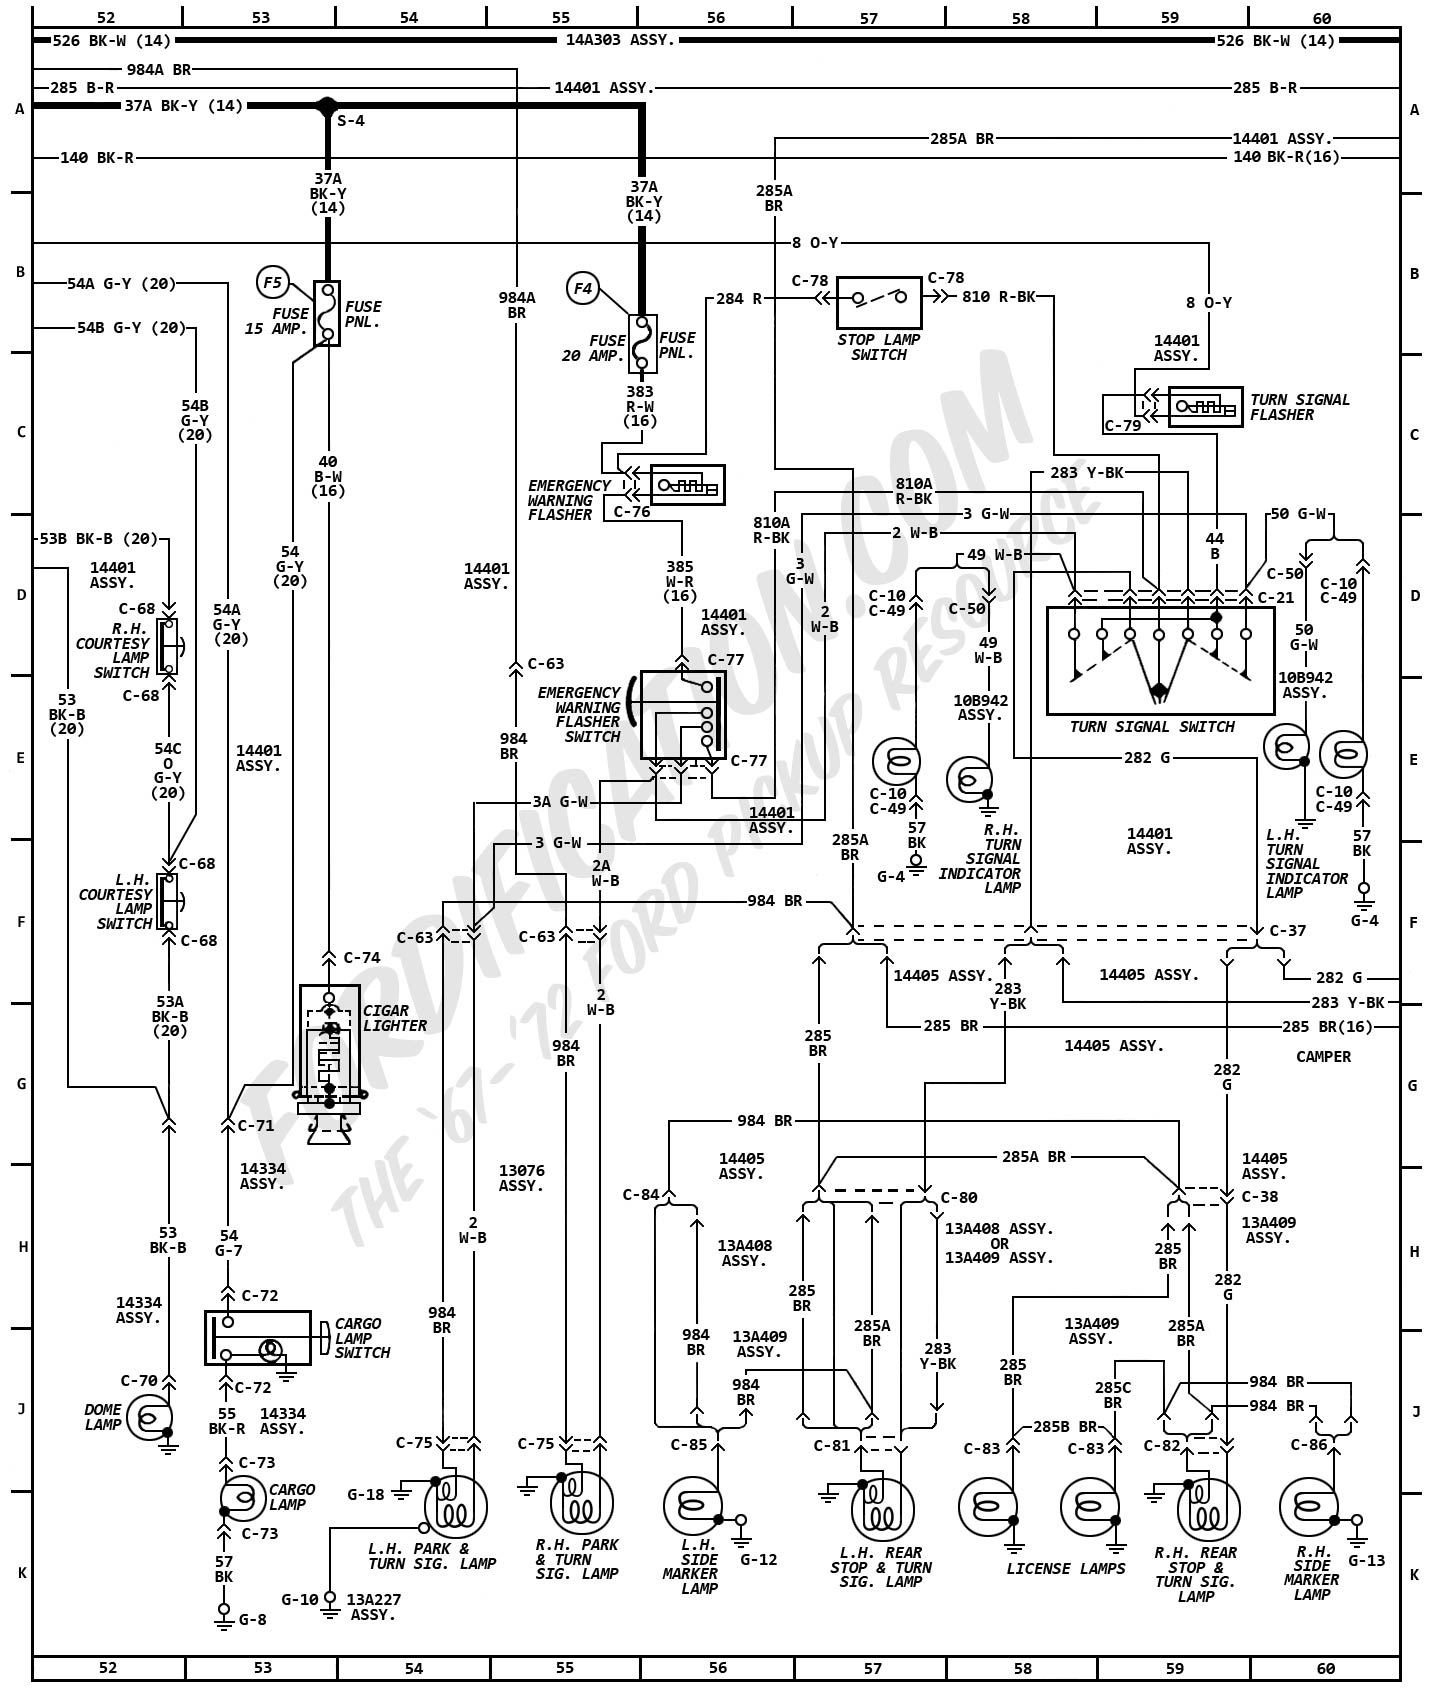 Ignition Coil Wiring Diagram besides 57 Chevy Dash Wiring Diagram in addition 1954 Ford Convertible Wiring Diagram also 1957 Chevrolet Generator Wiring Diagram together with 1968 Bel Air Wiper Wiring Diagram. on 1956 chevy bel air fuse box location